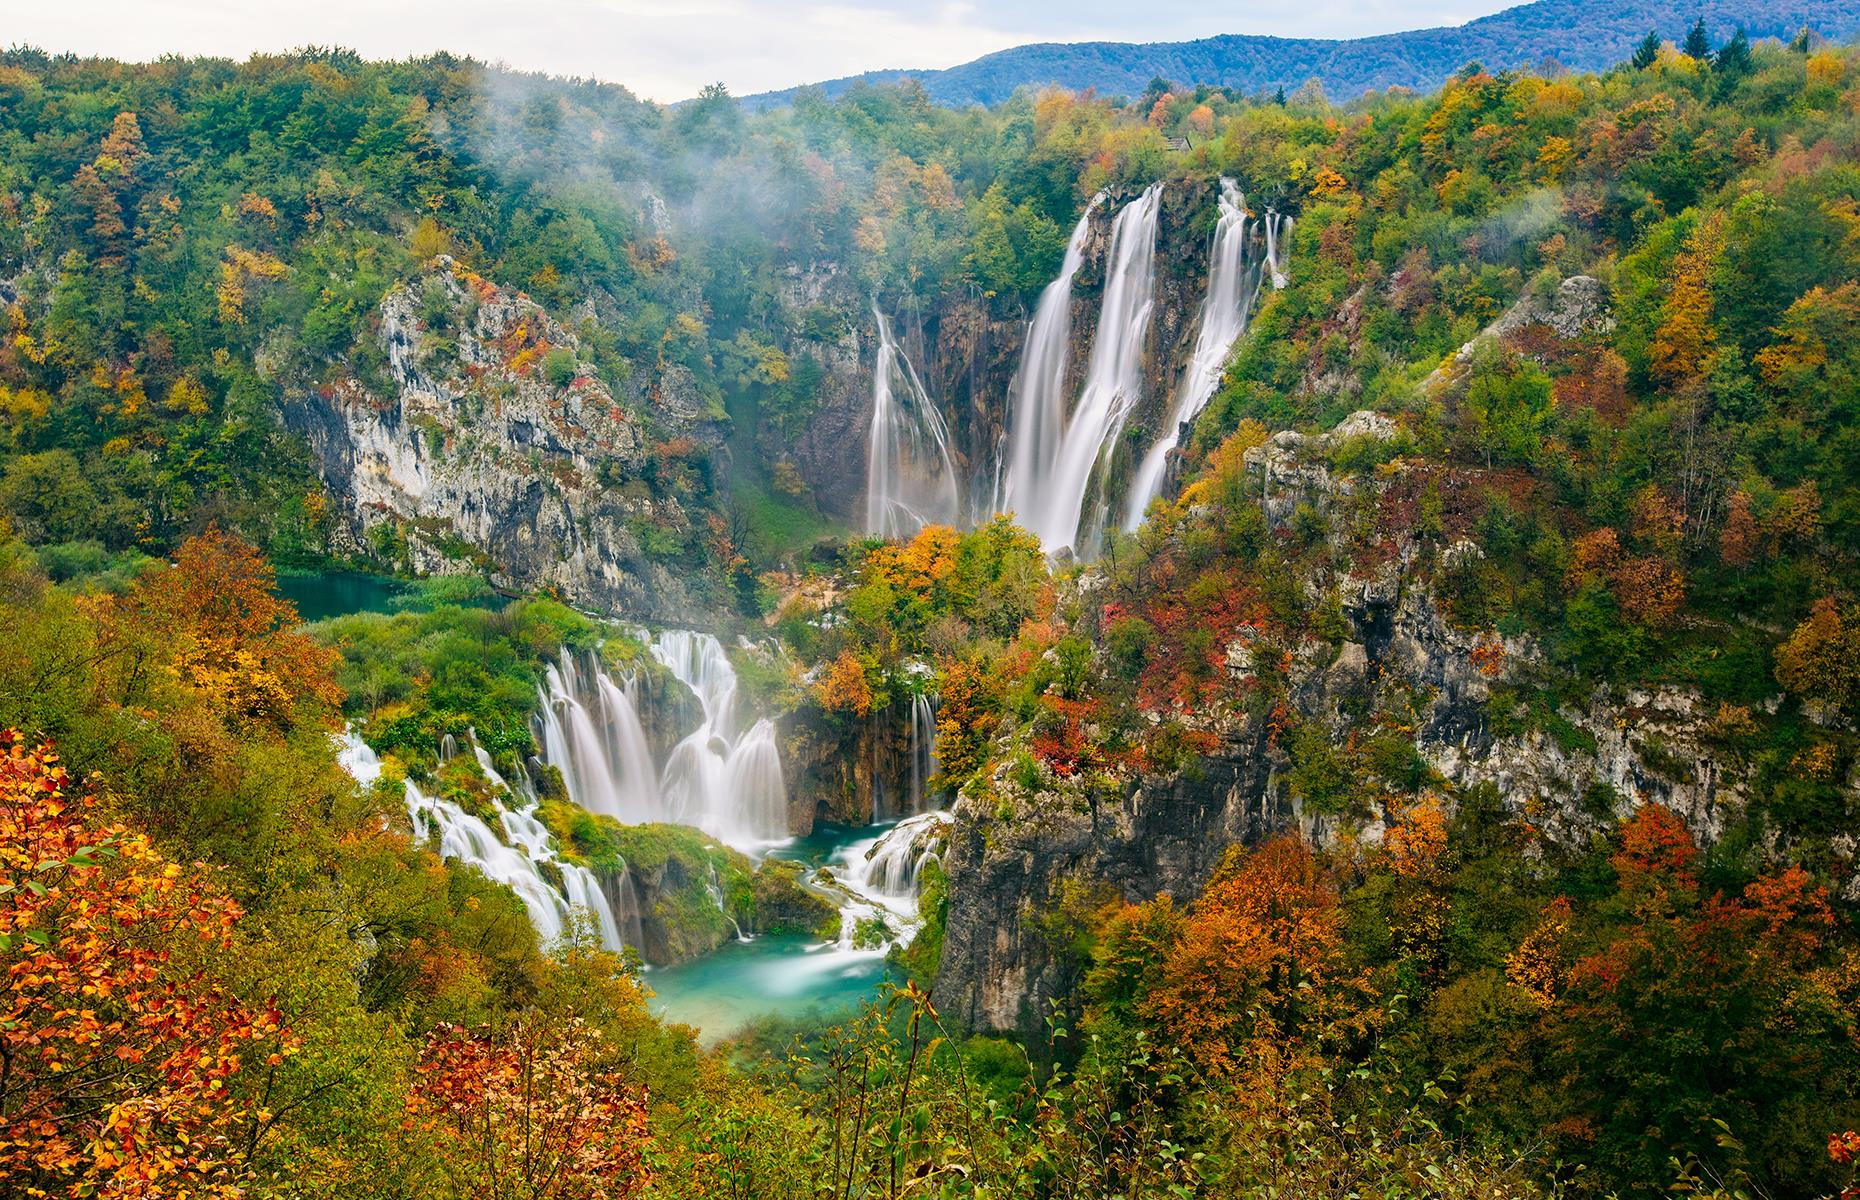 Slide 37 of 43: Covering almost 115 square miles (298sq km), Plitvice Lakes National Park is found near the Bosnia and Herzegovina border, two hours south by car from Zagreb in Croatia. The park, founded in 1949, is famous for its collection of 16 crystal clear, color-changing lakes – they morph between shades of green and blue due to their high mineral content – plus over 90 waterfalls. It's a truly magical landscape. Here are stunning images of Europe's best national parks.